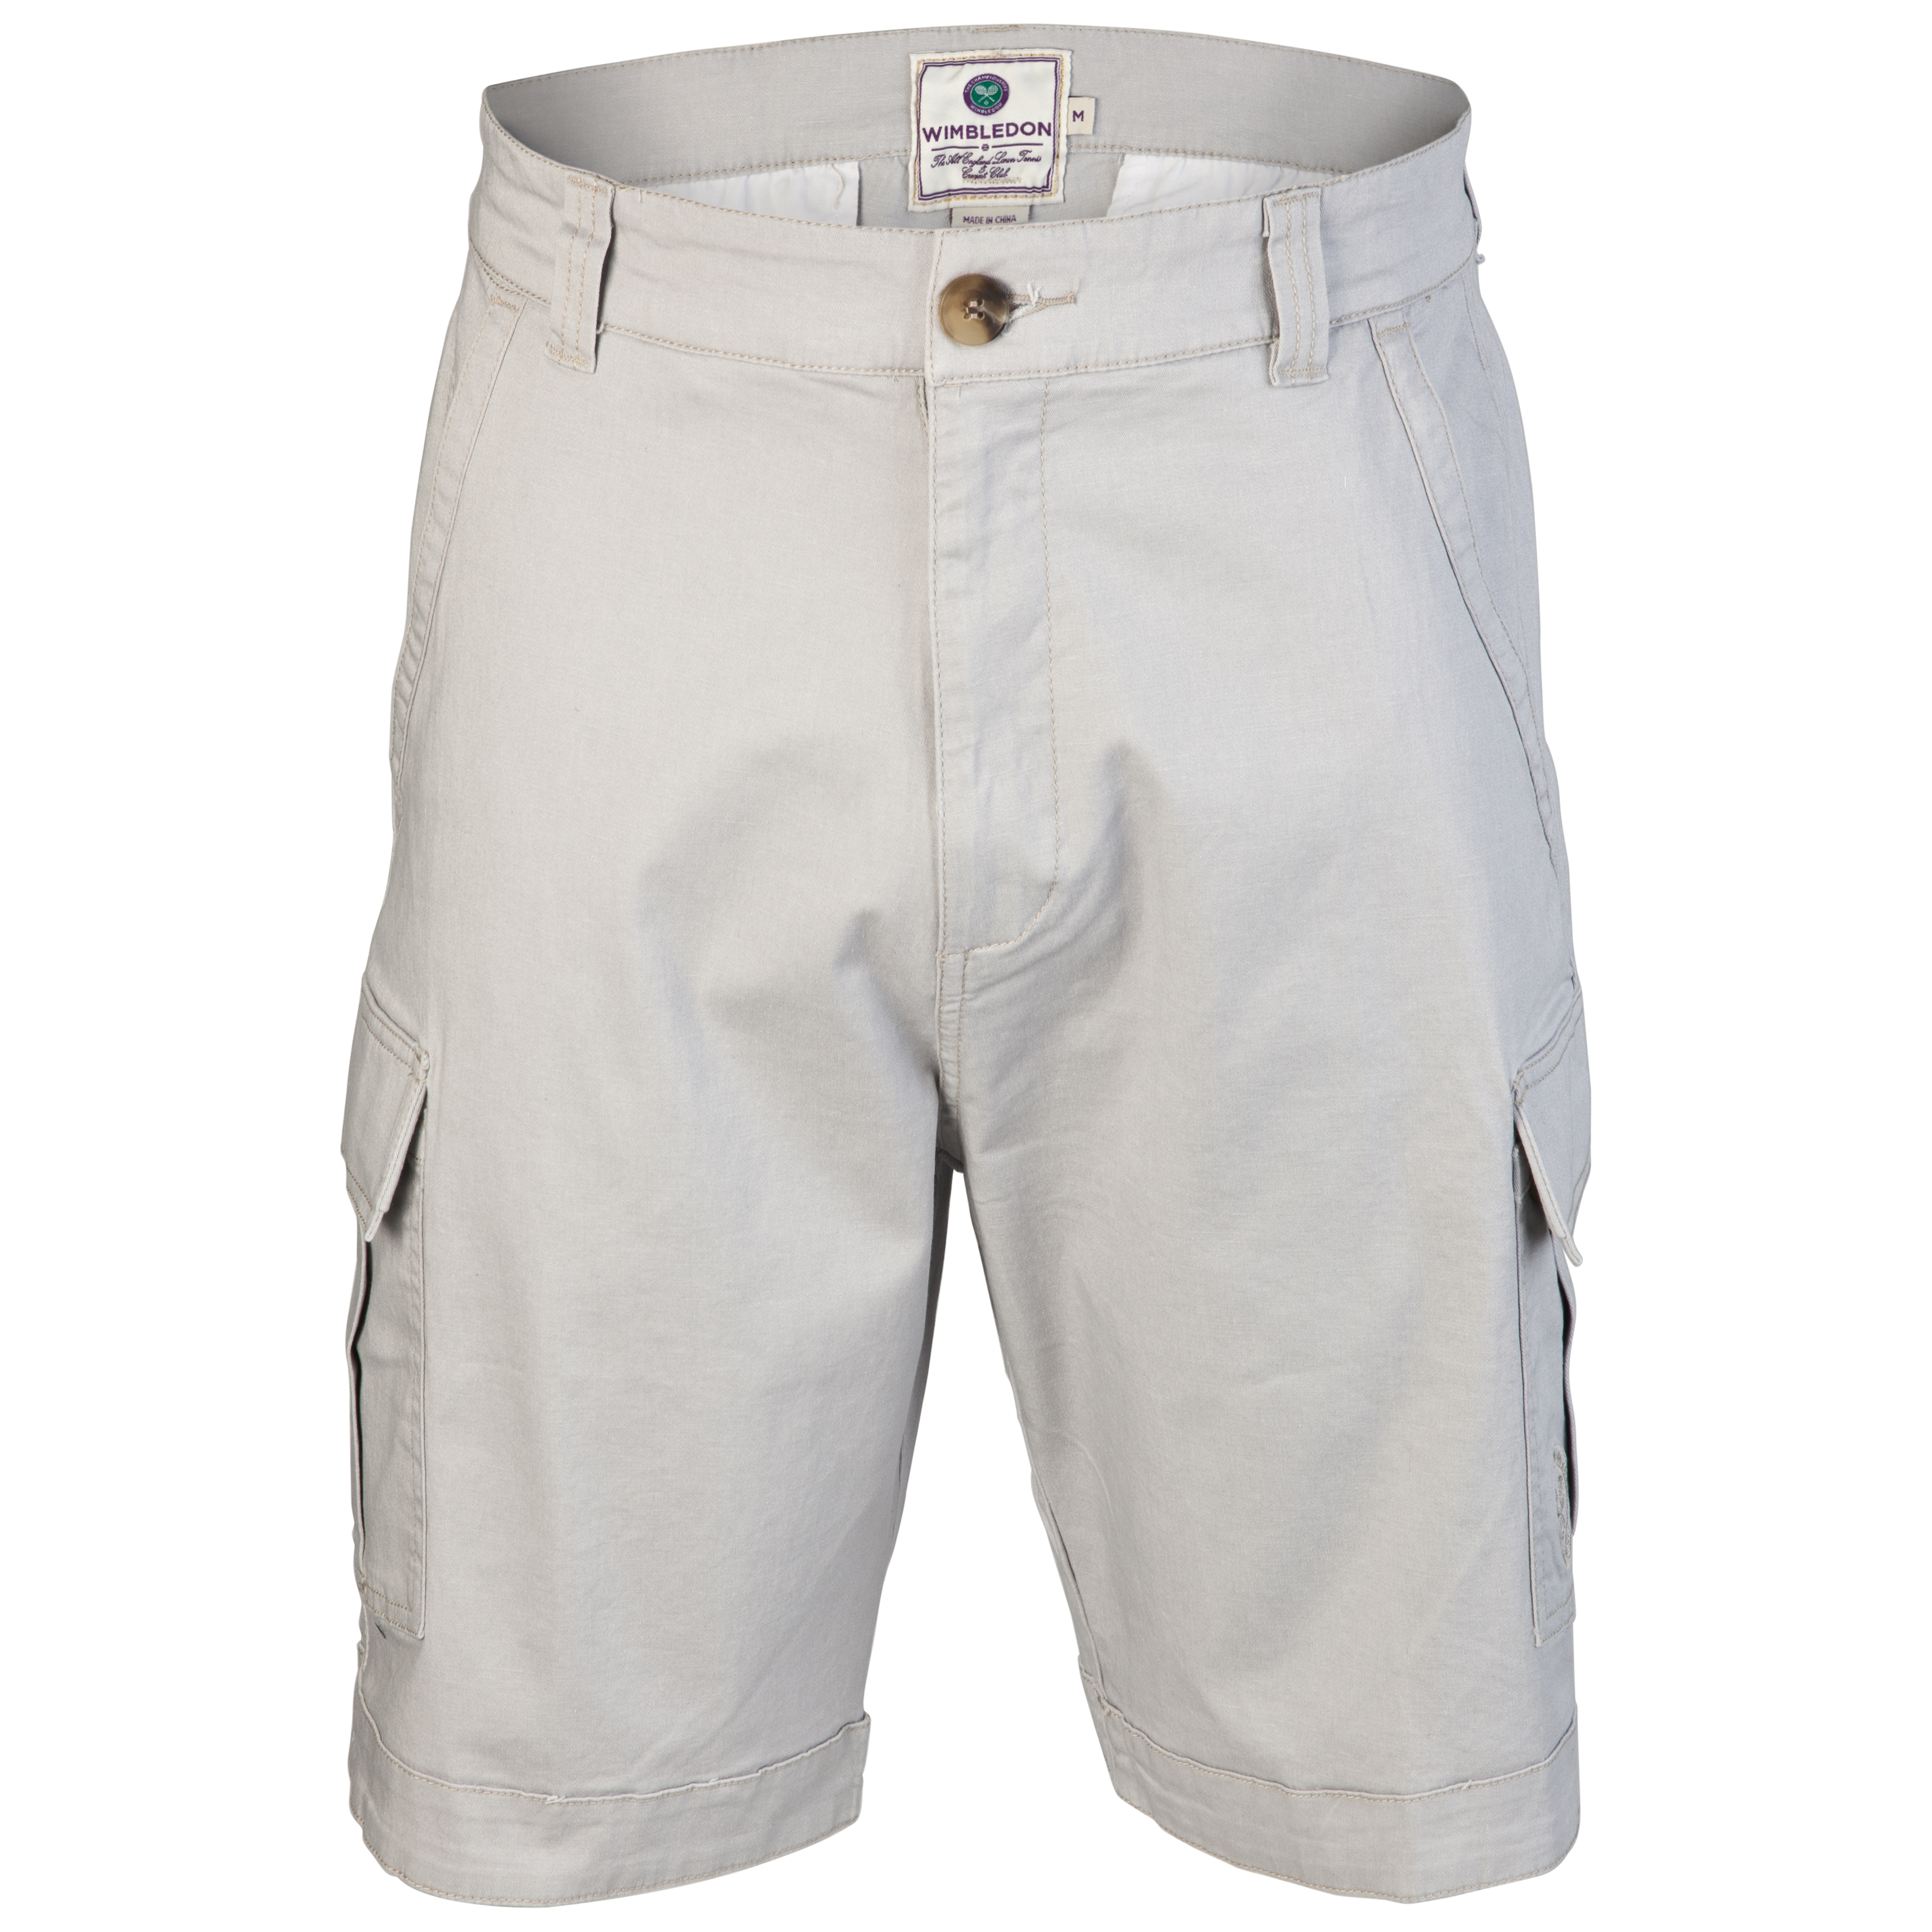 Wimbledon Casual Shorts - Light Grey